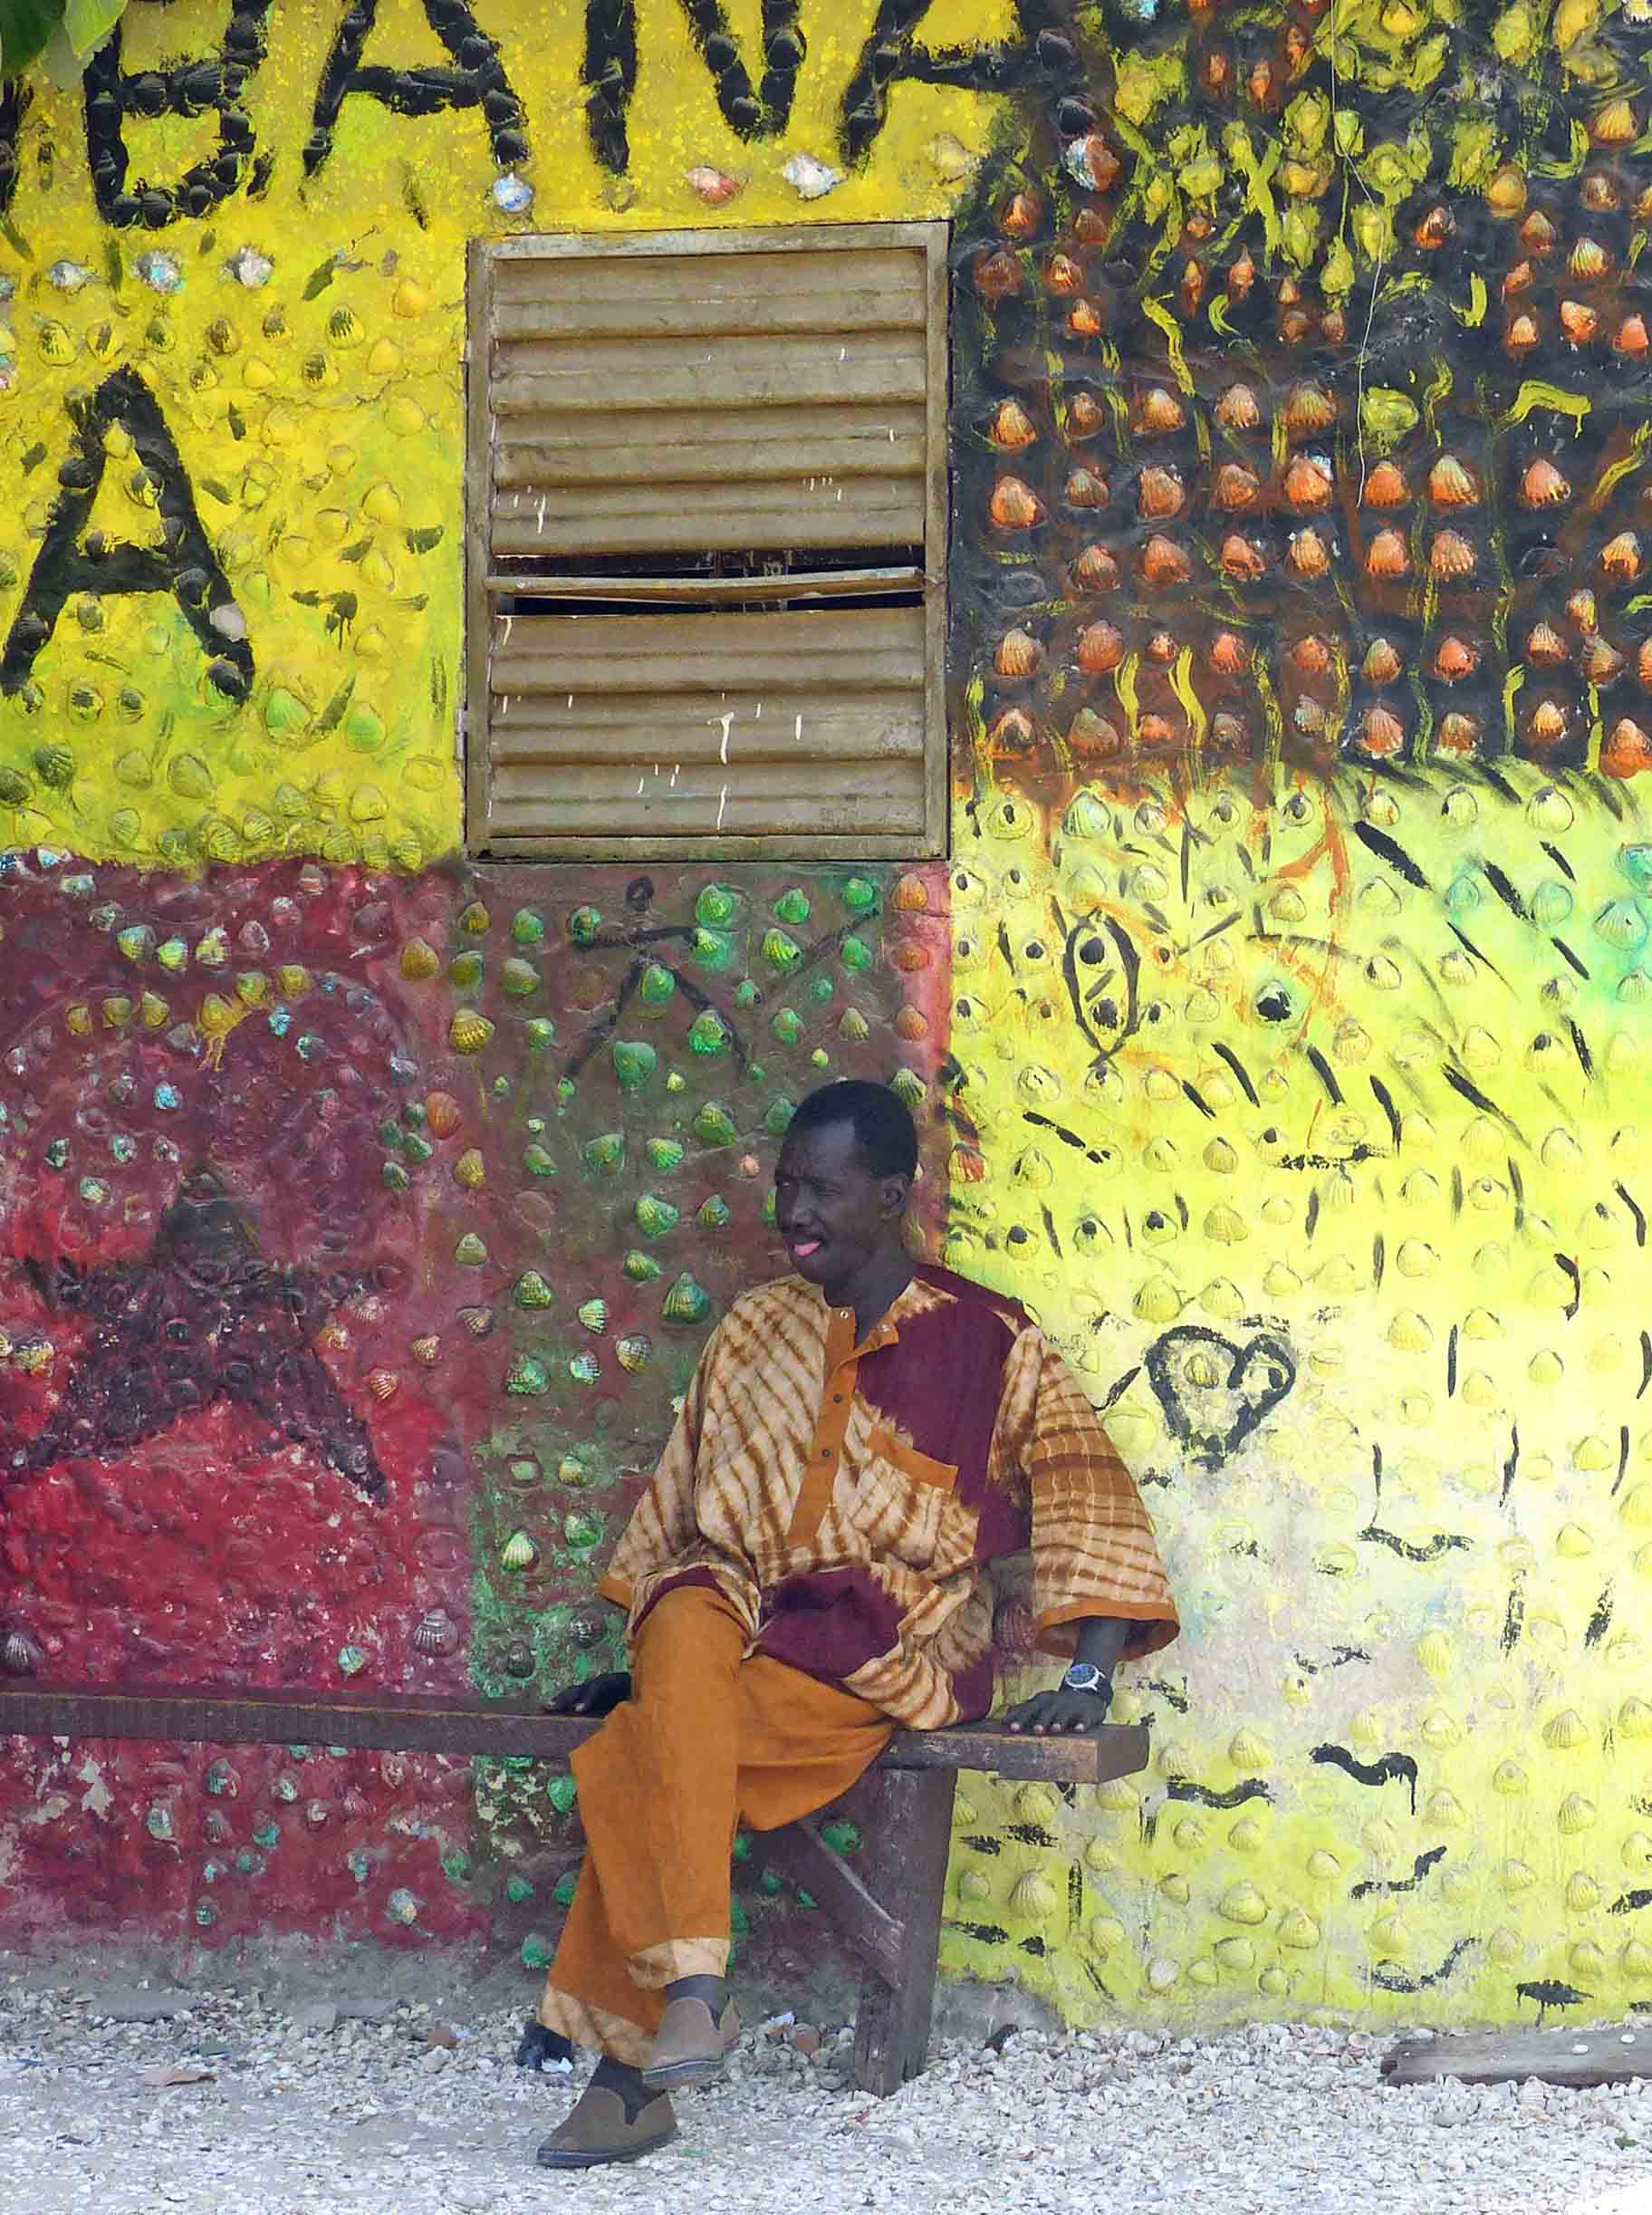 A man in African dress sitting on a bench by a colourful wall